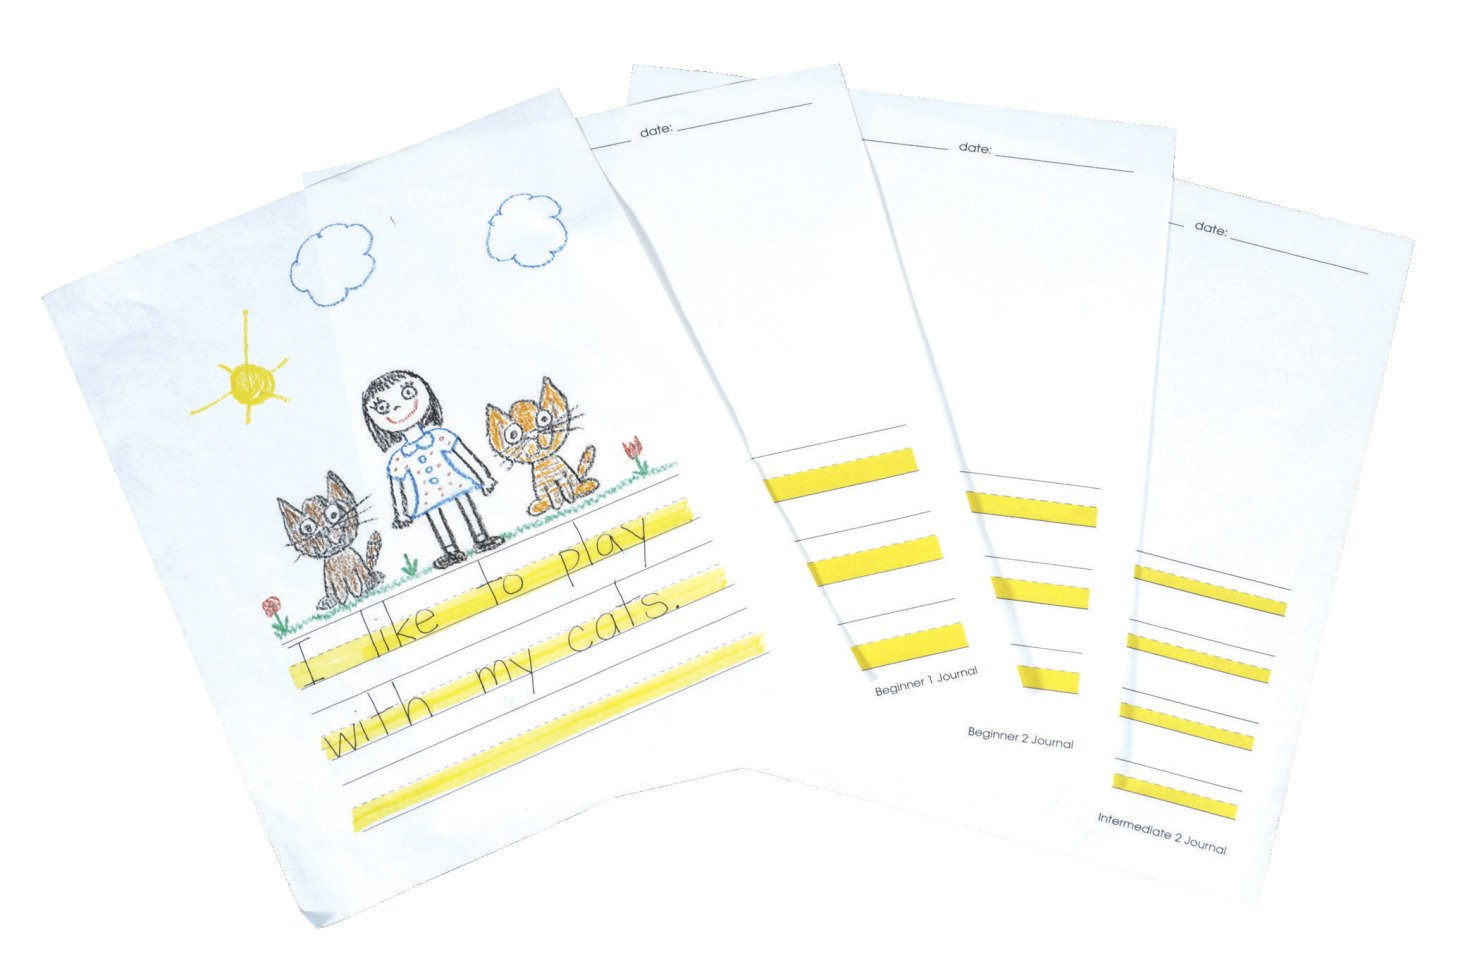 Abilitations Hi-Write Beginner 1 Journal Paper, 9-3/4 x 12-3/4 Inches, White, Pack of 100